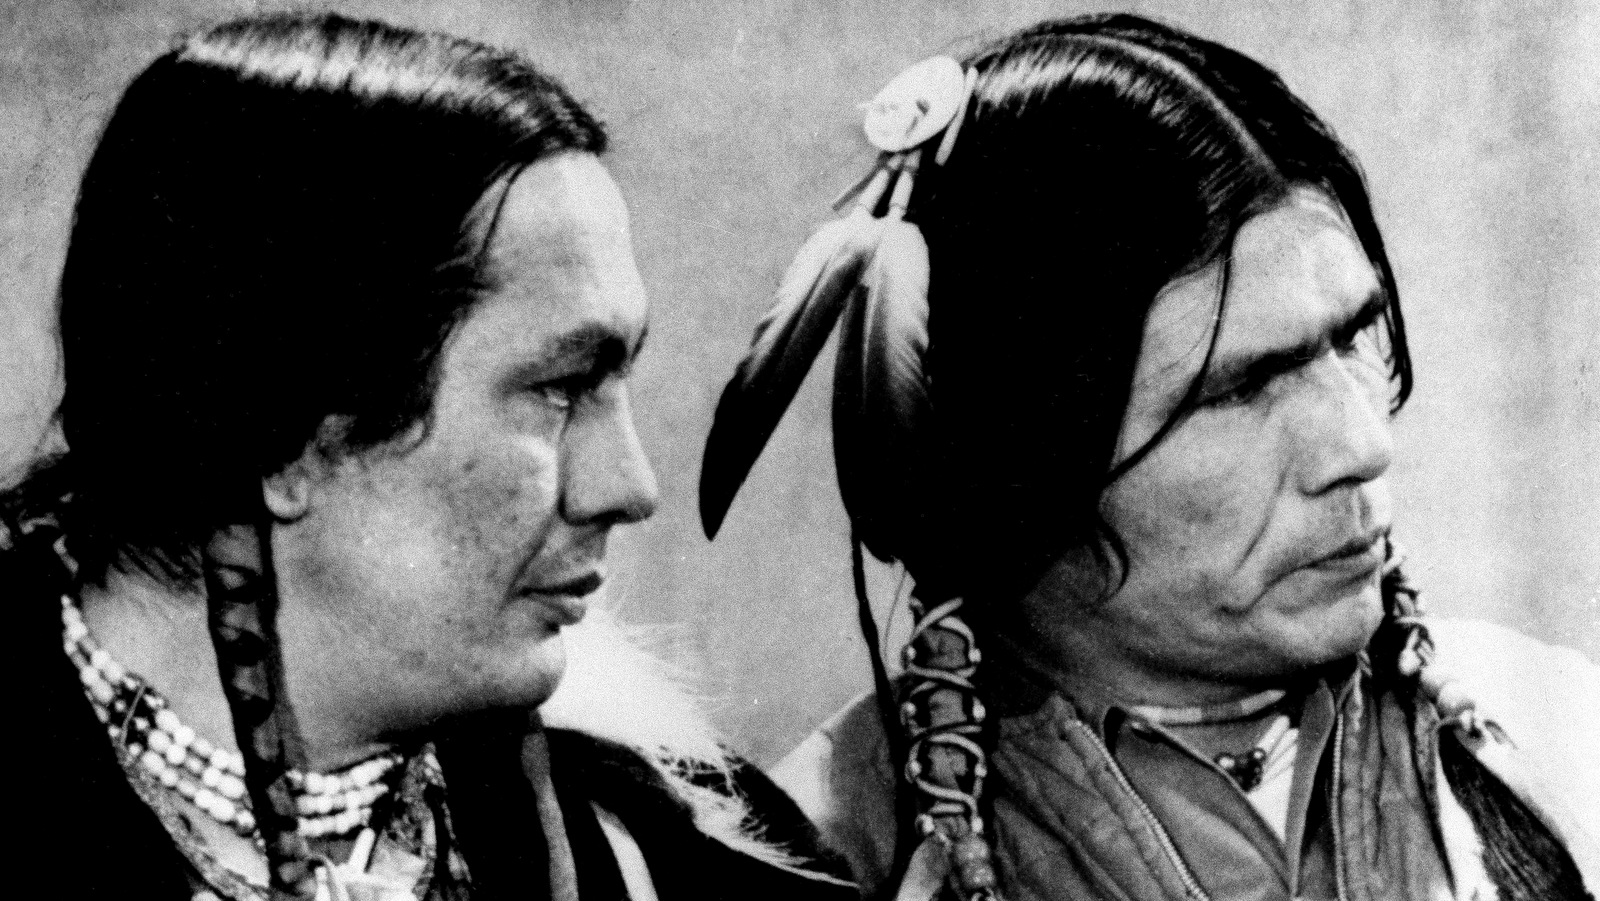 Russell Means, left, and Dennis Banks, American Indian Movement (AIM) leaders are shown on trial in St. Paul, Minn., April 12, 1974. They are on trial for the occupation of Wounded Knee, S.D. in 1973. Means and Banks say the government is on trial, not them and predict they will be victorious. (AP Photo)